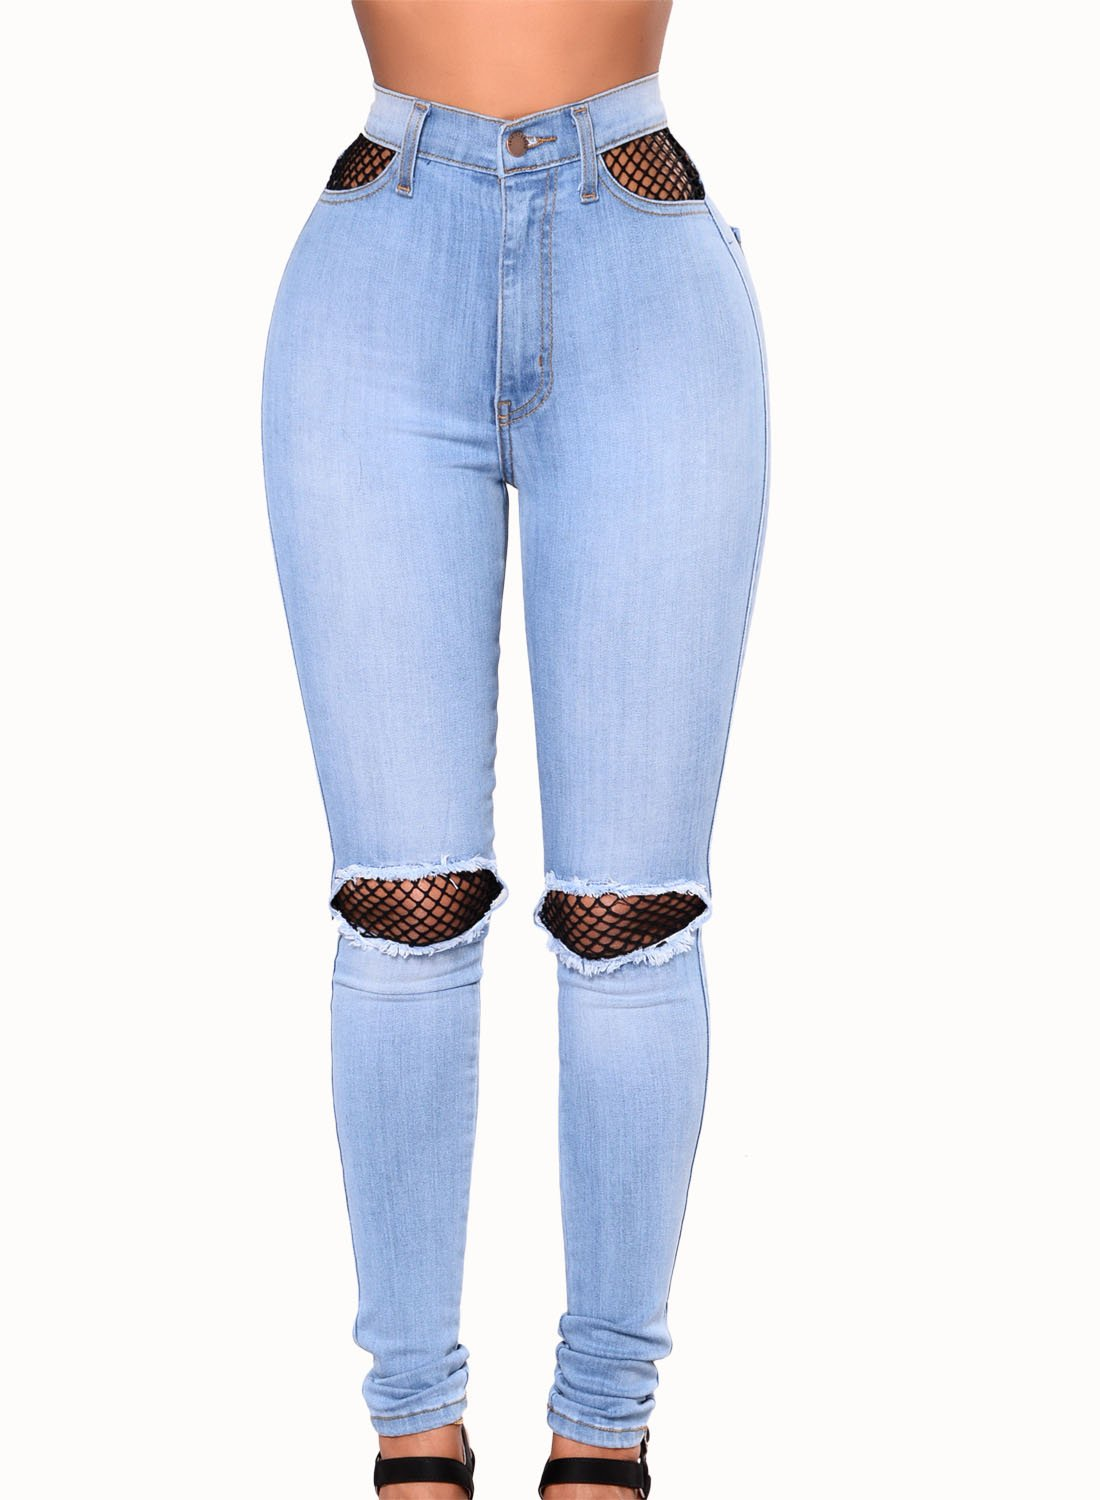 a347107eb5c68 Sidefeel Women Hight Waist Ripped Denim Ankle Length Skinny Jeans HX78691-P  Holiday Gifts